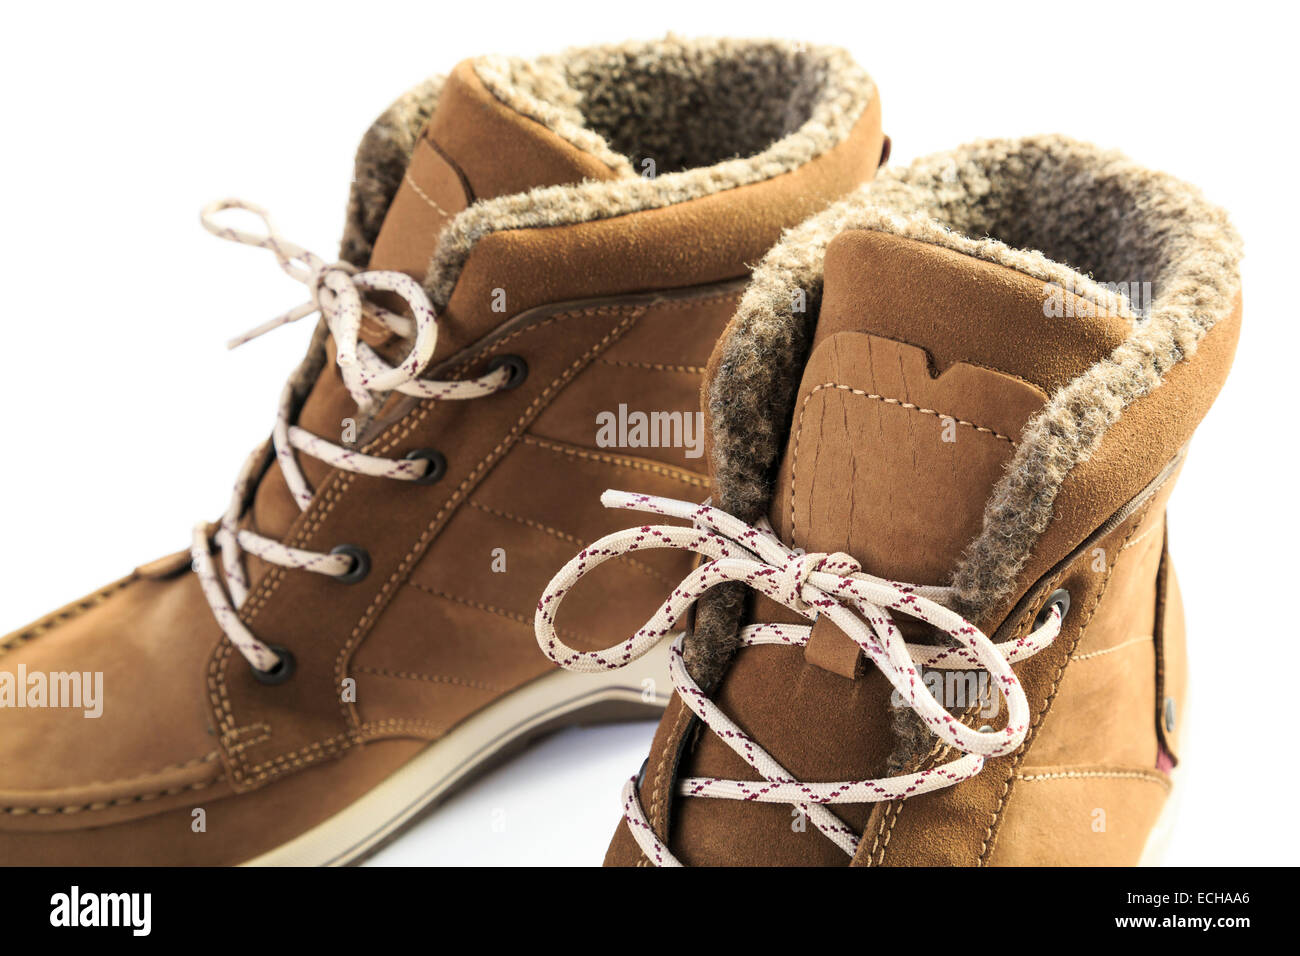 Close up of a pair of women's leather warm fur-lined lace-up winter boots isolated on a white background - Stock Image